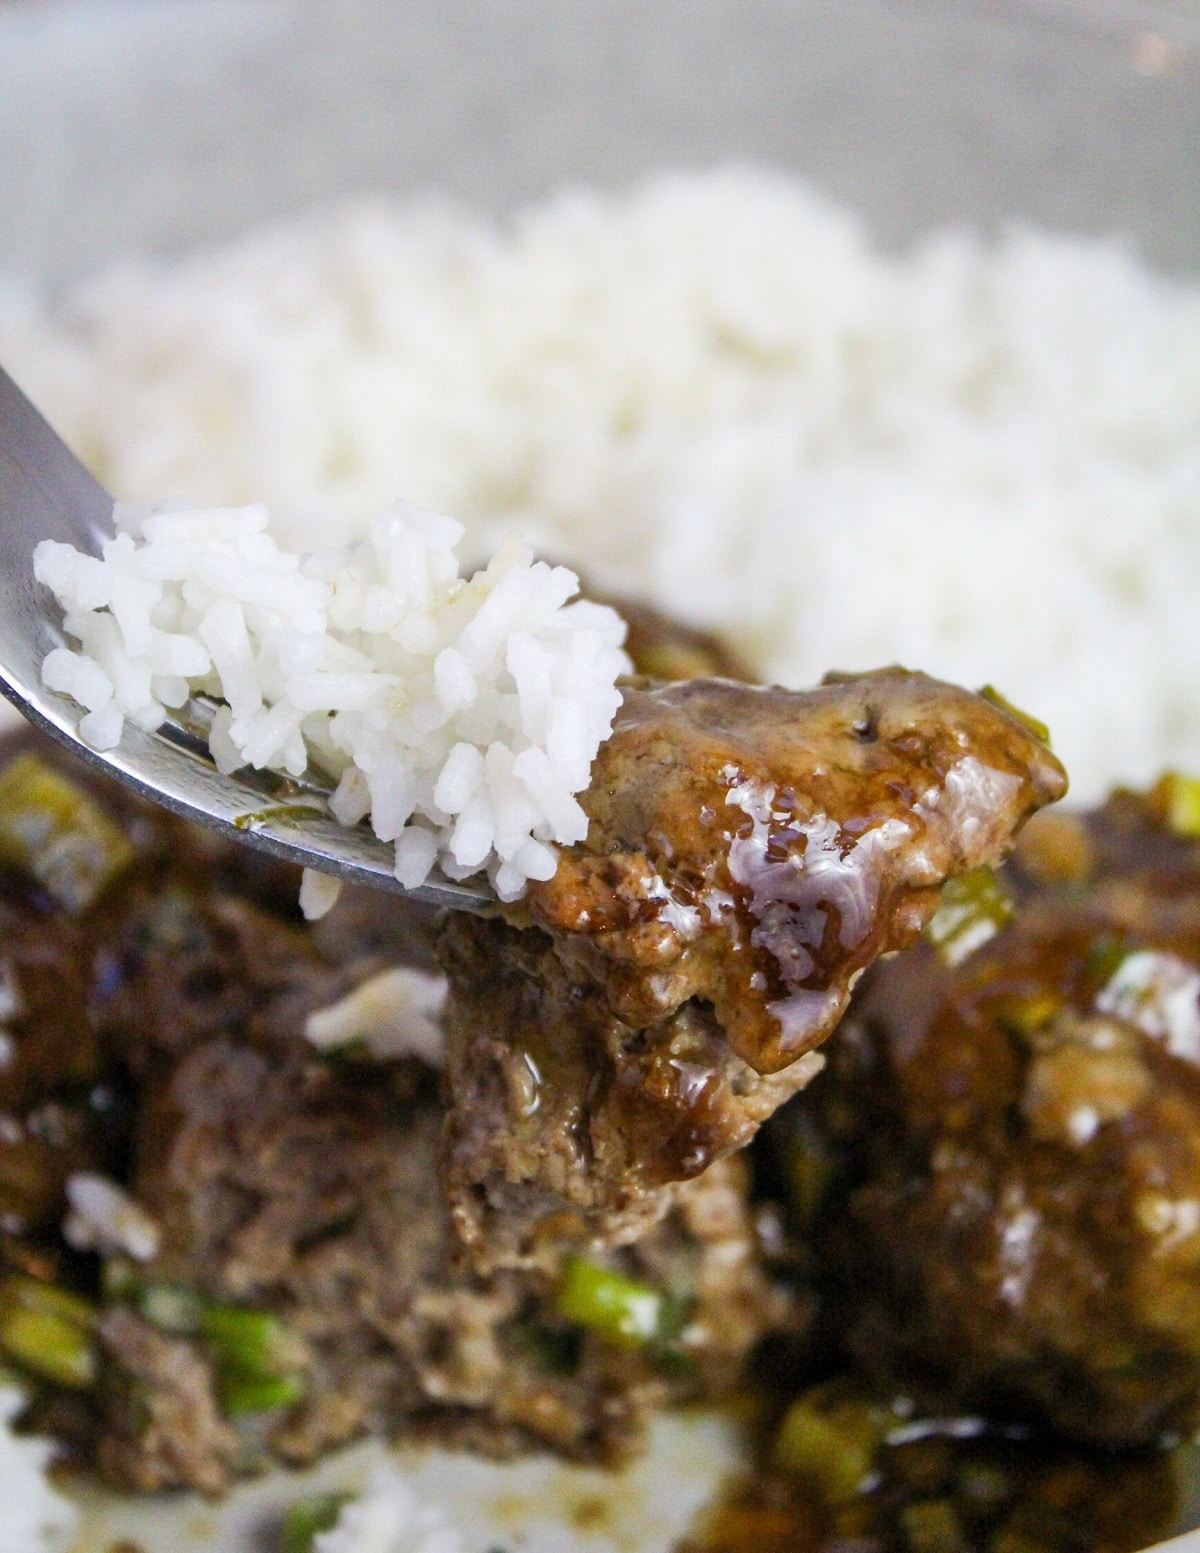 meatball on a fork with rice